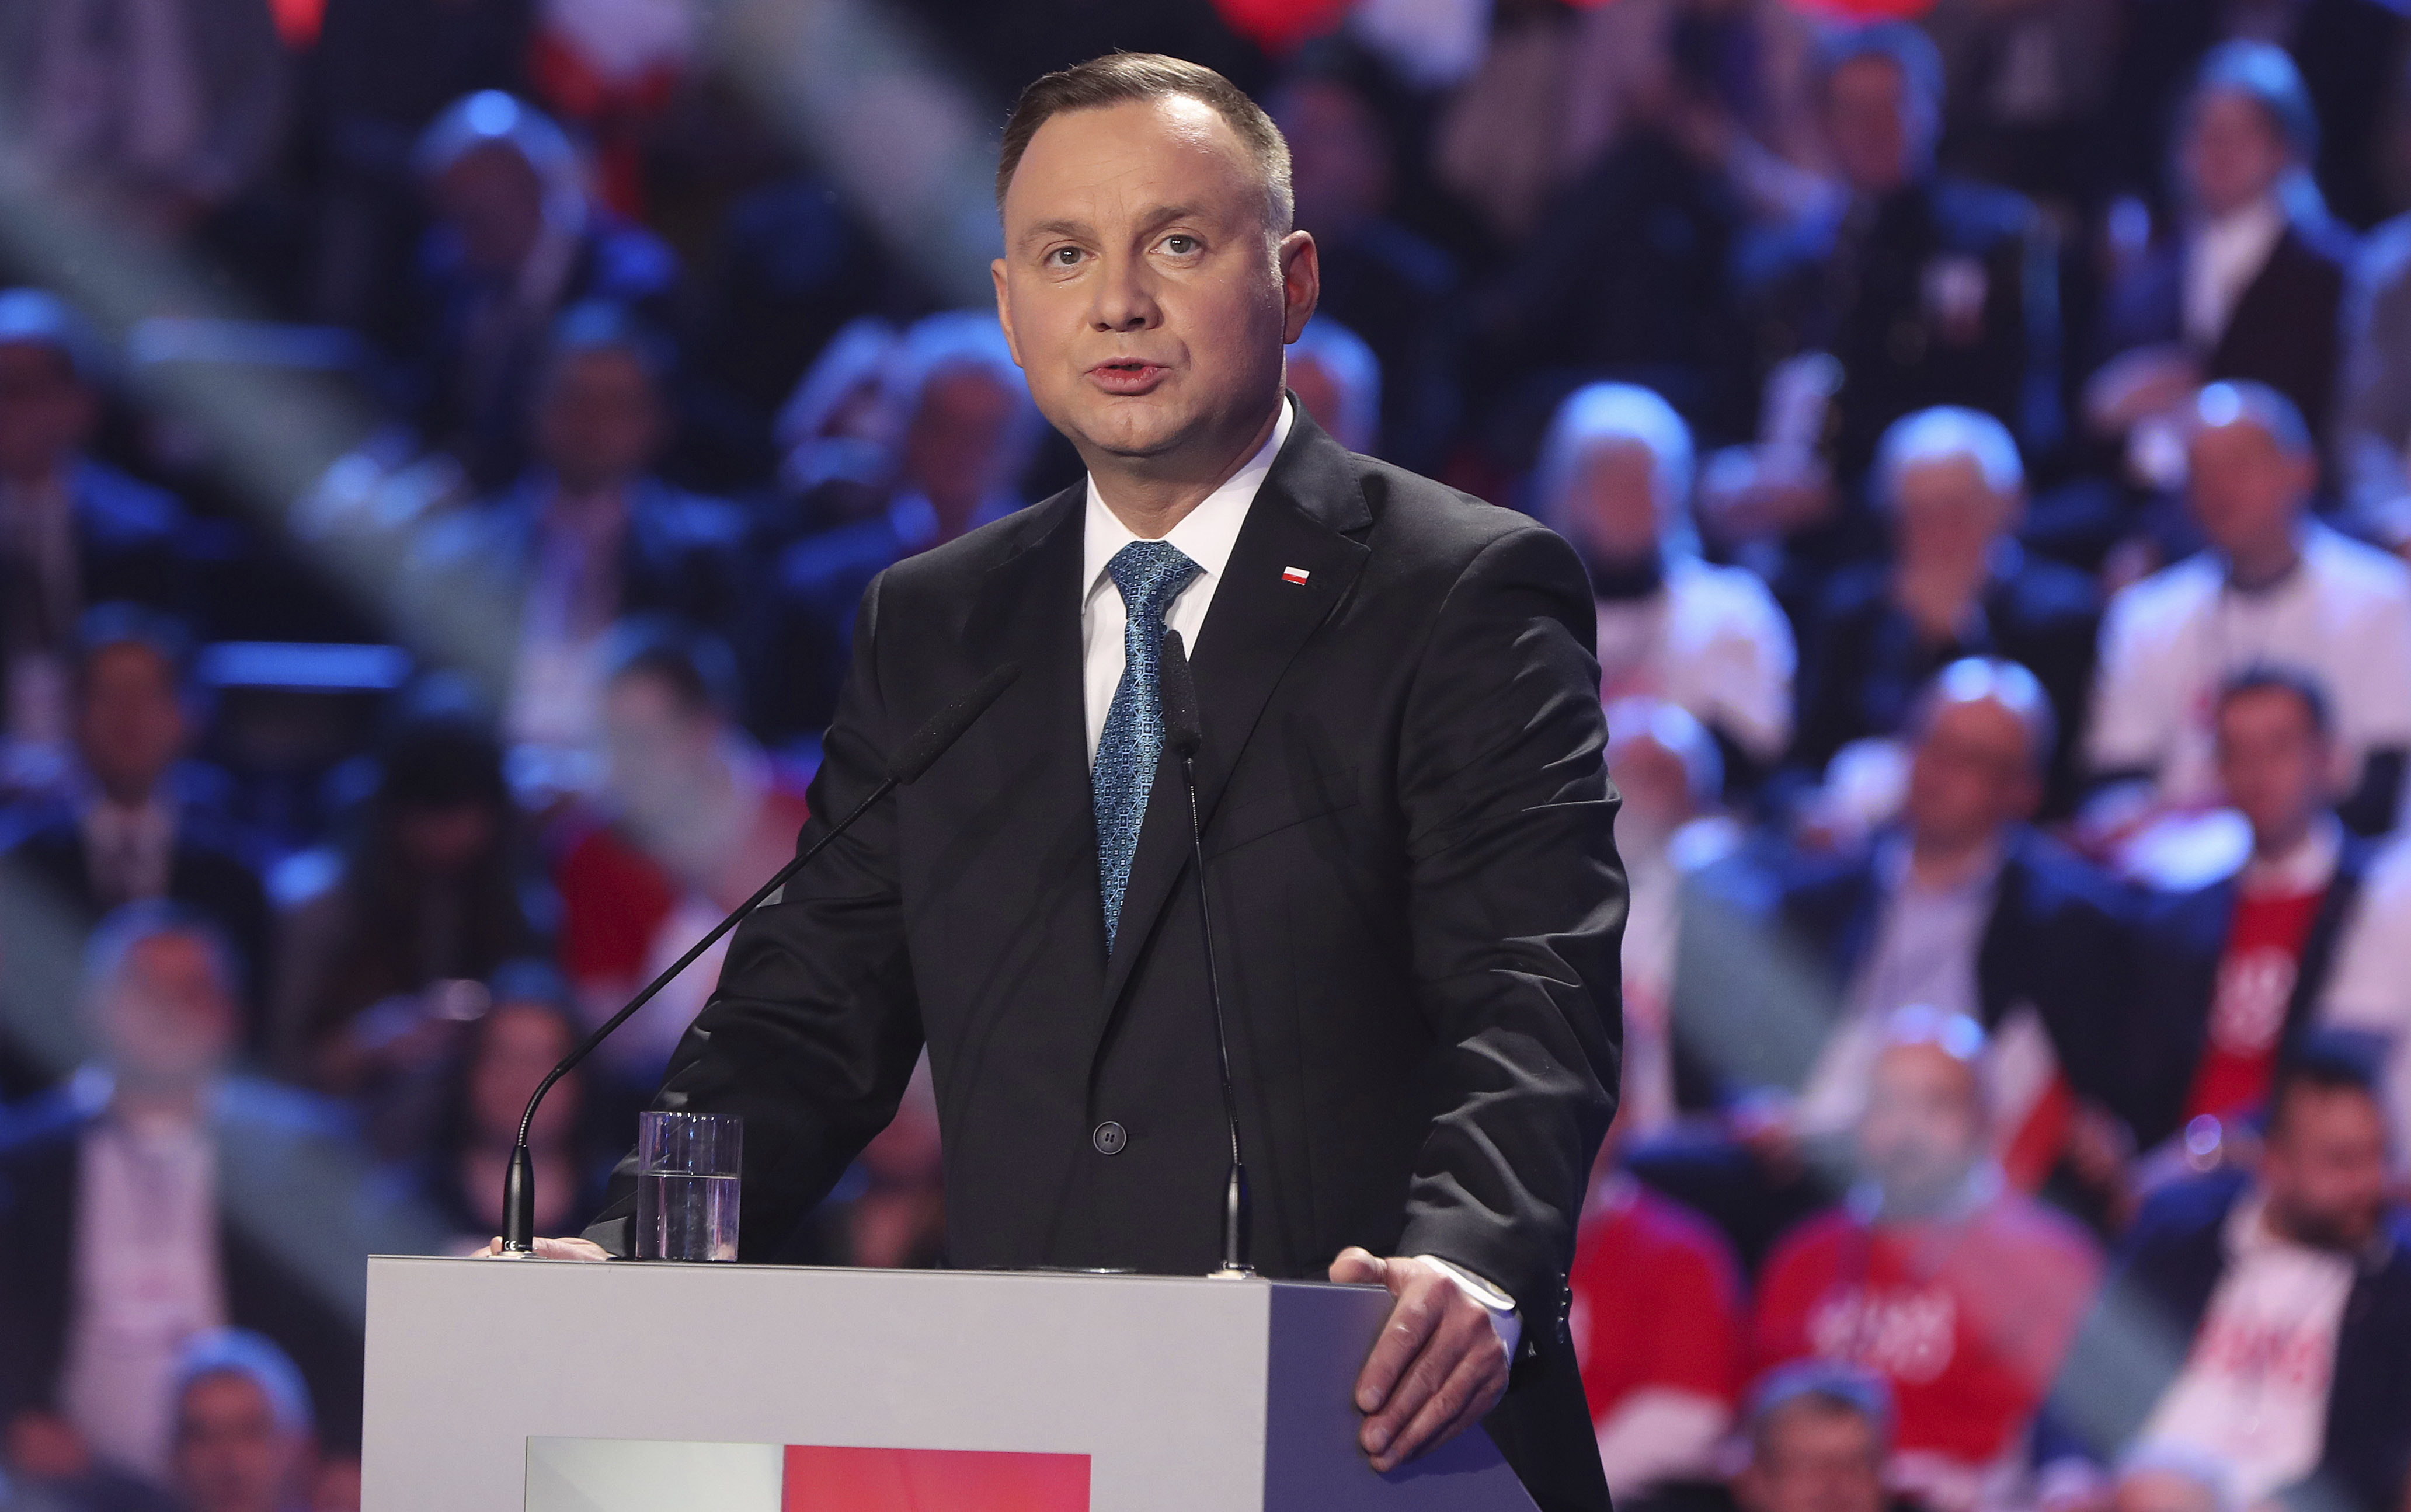 Poland's President Andrzej Duda addresses supporters during a ruling Law and Justice party convention that backed his re-election bid in the May 10 presidential vote in Warsaw, Poland, on Feb. 15, 2020.